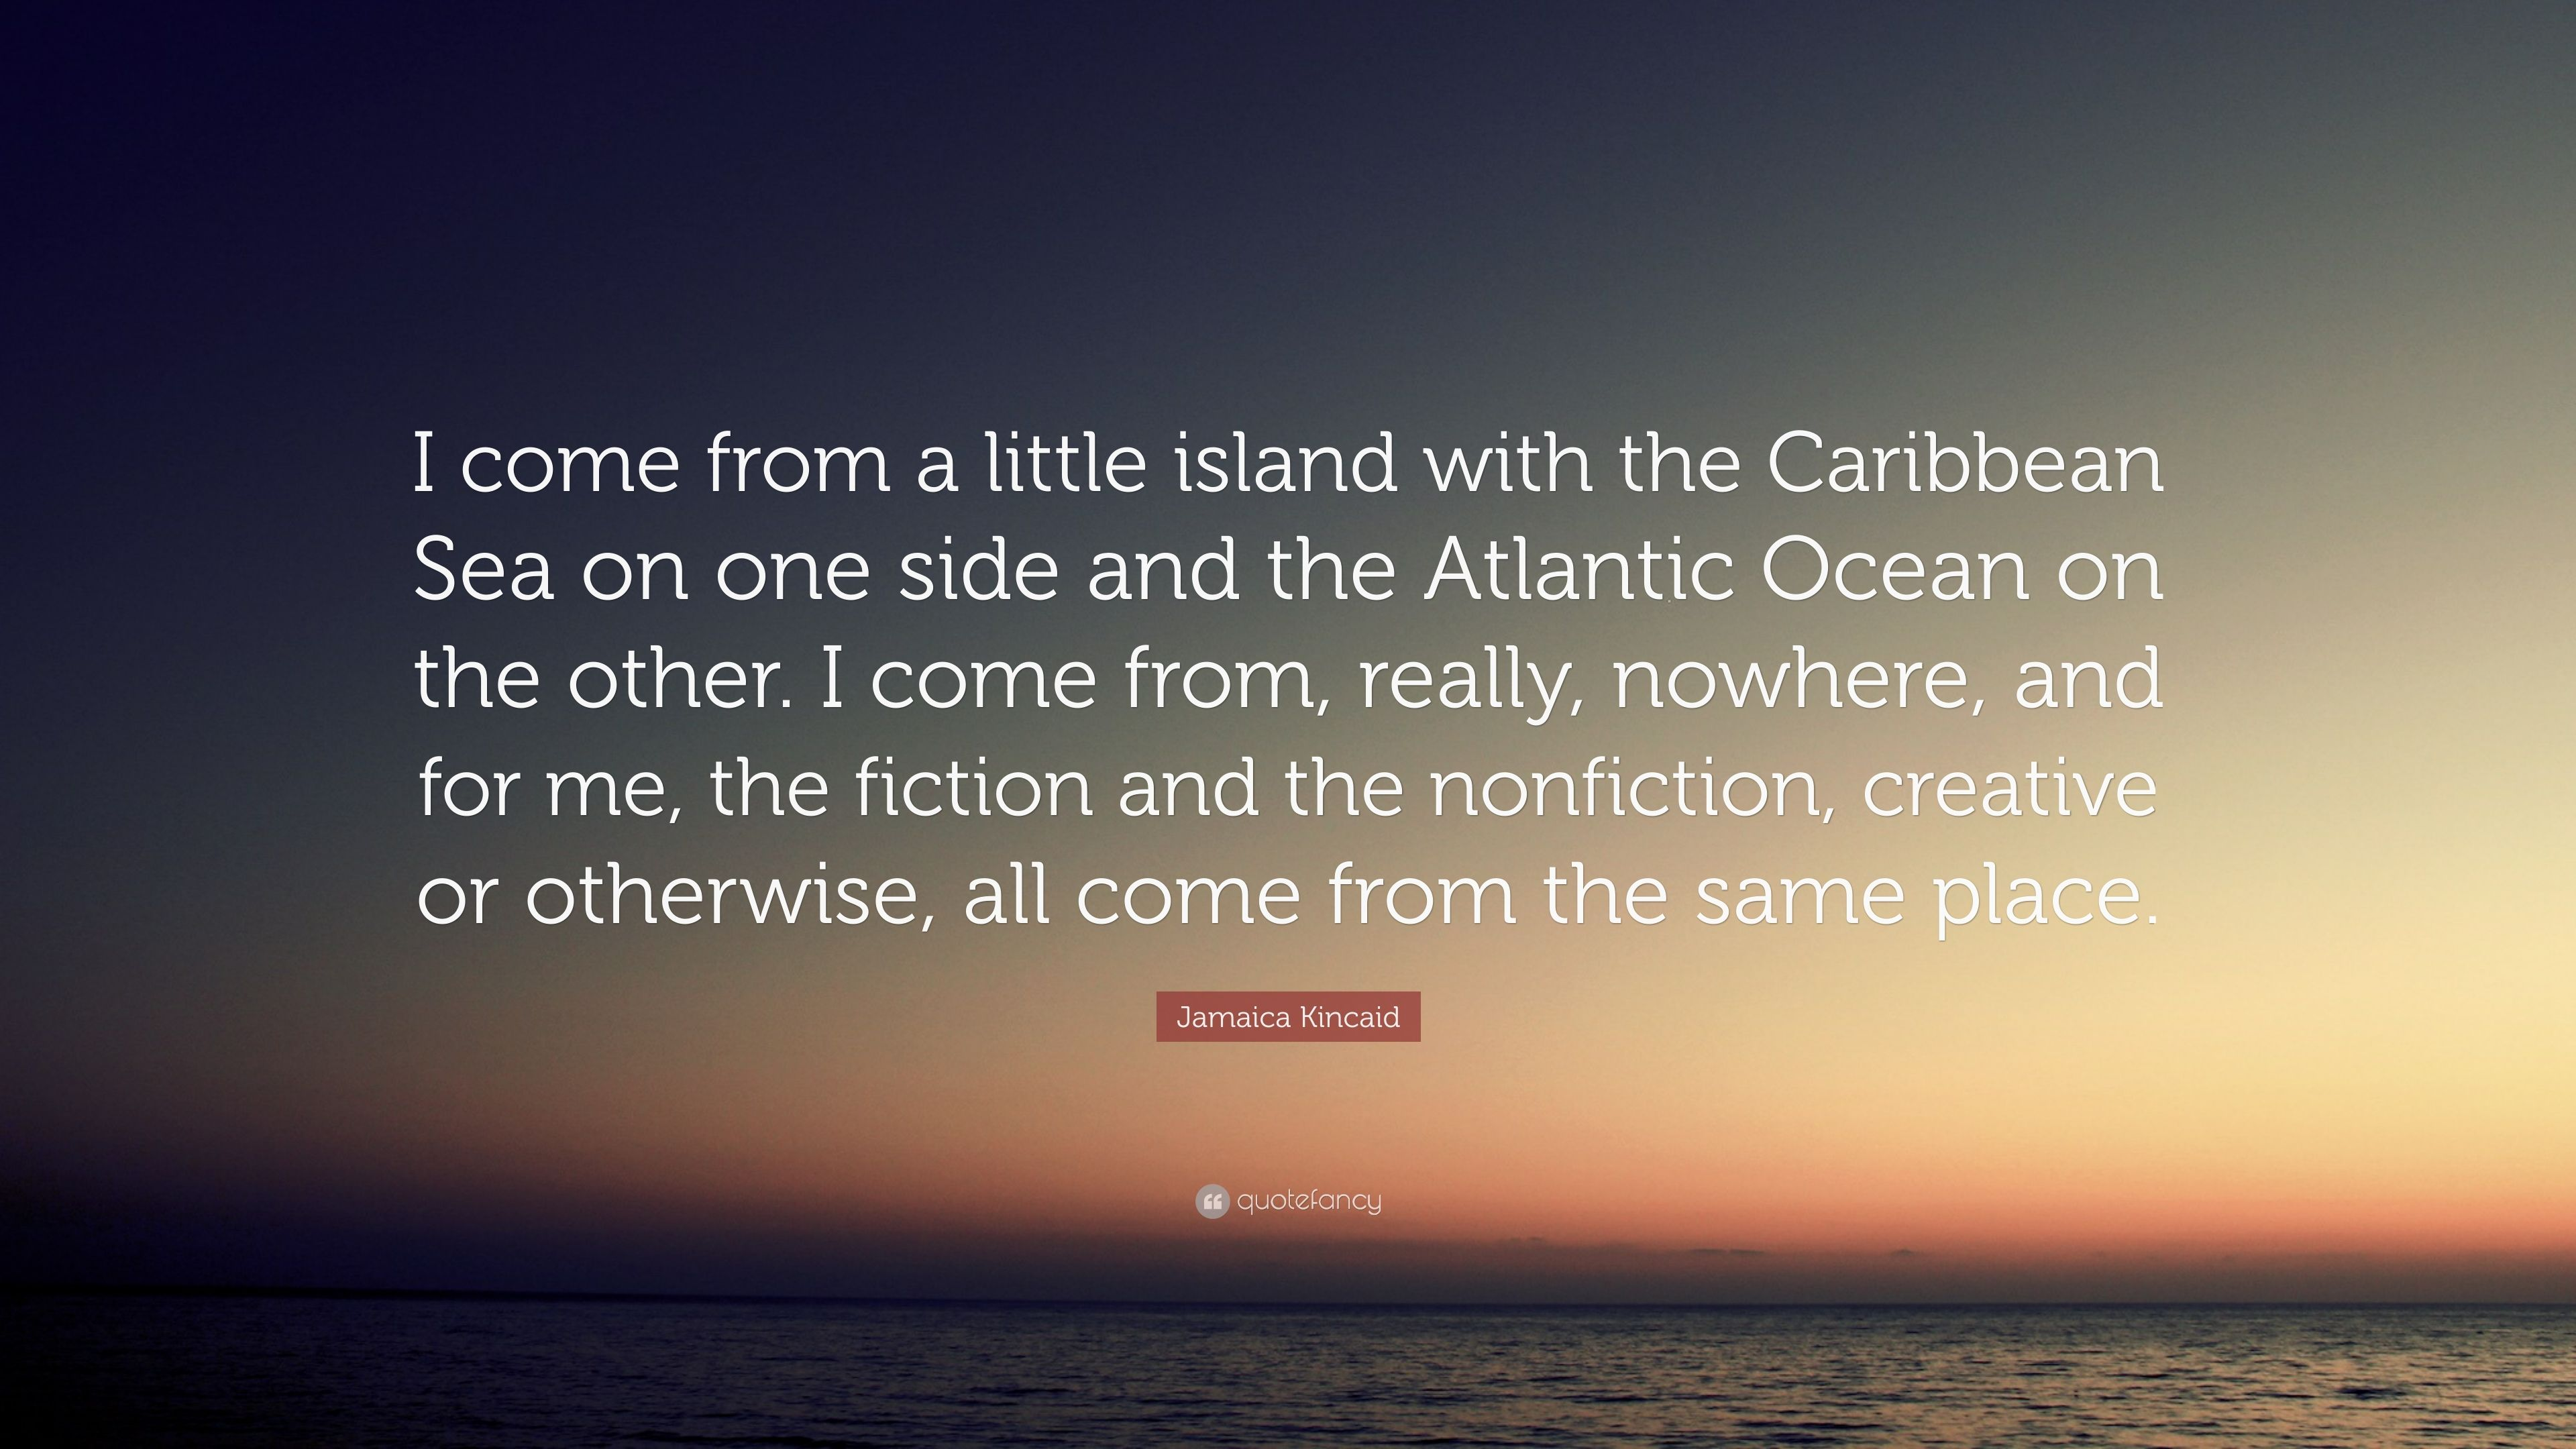 Jamaica Kincaid Quote I Come From A Little Island With The Caribbean Sea On